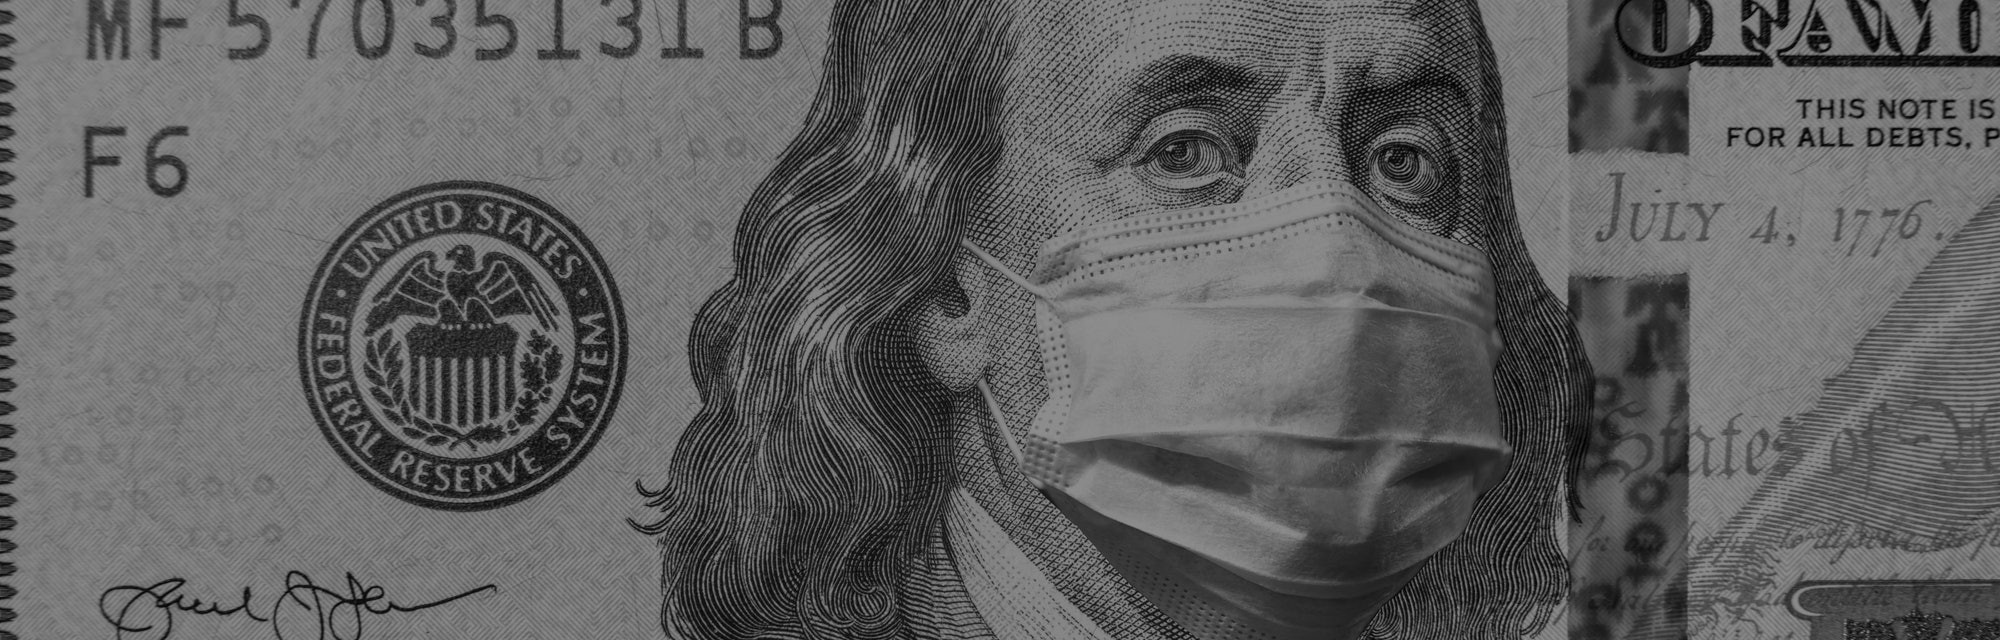 COVID-19 coronavirus in USA, 100 dollar money bill with face mask. Coronavirus affects global stock market. World economy hit by corona virus outbreak and pandemic fears. Crisis and finance concept.